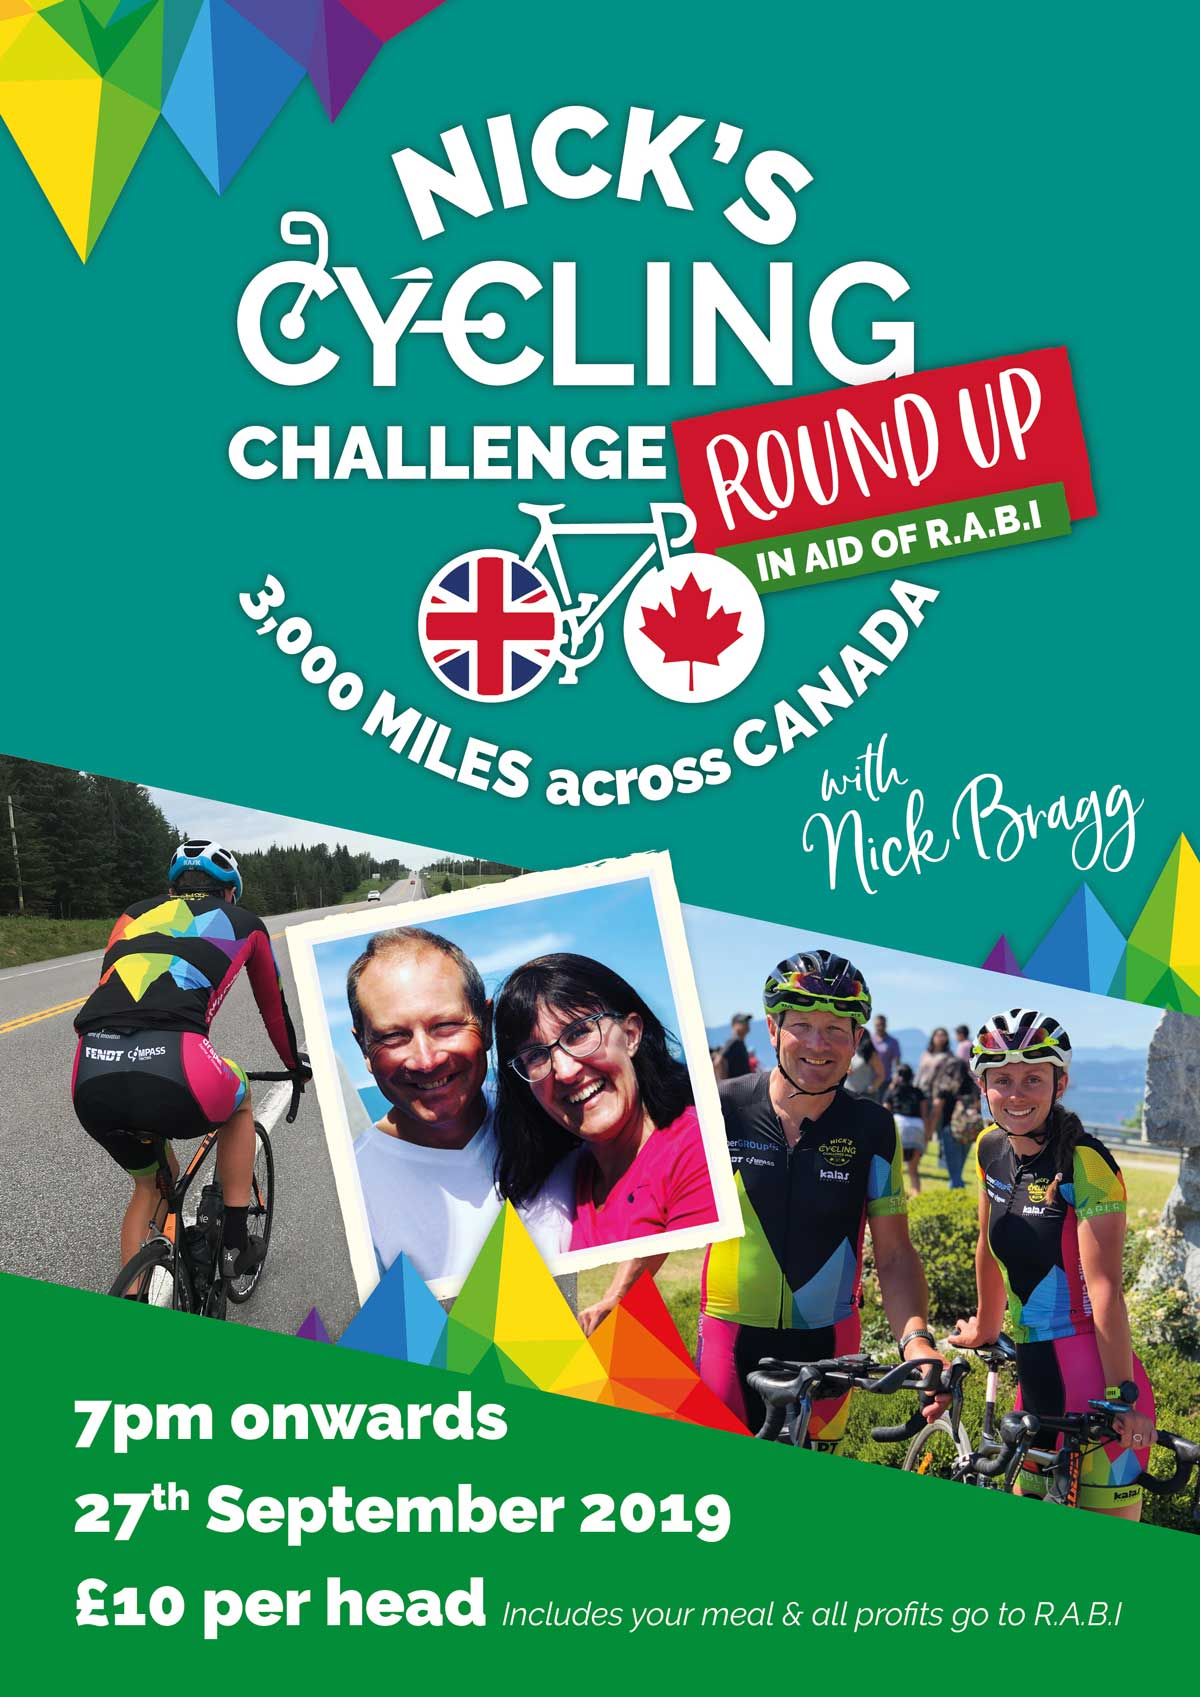 Nick's Cycling Challenge Round-Up